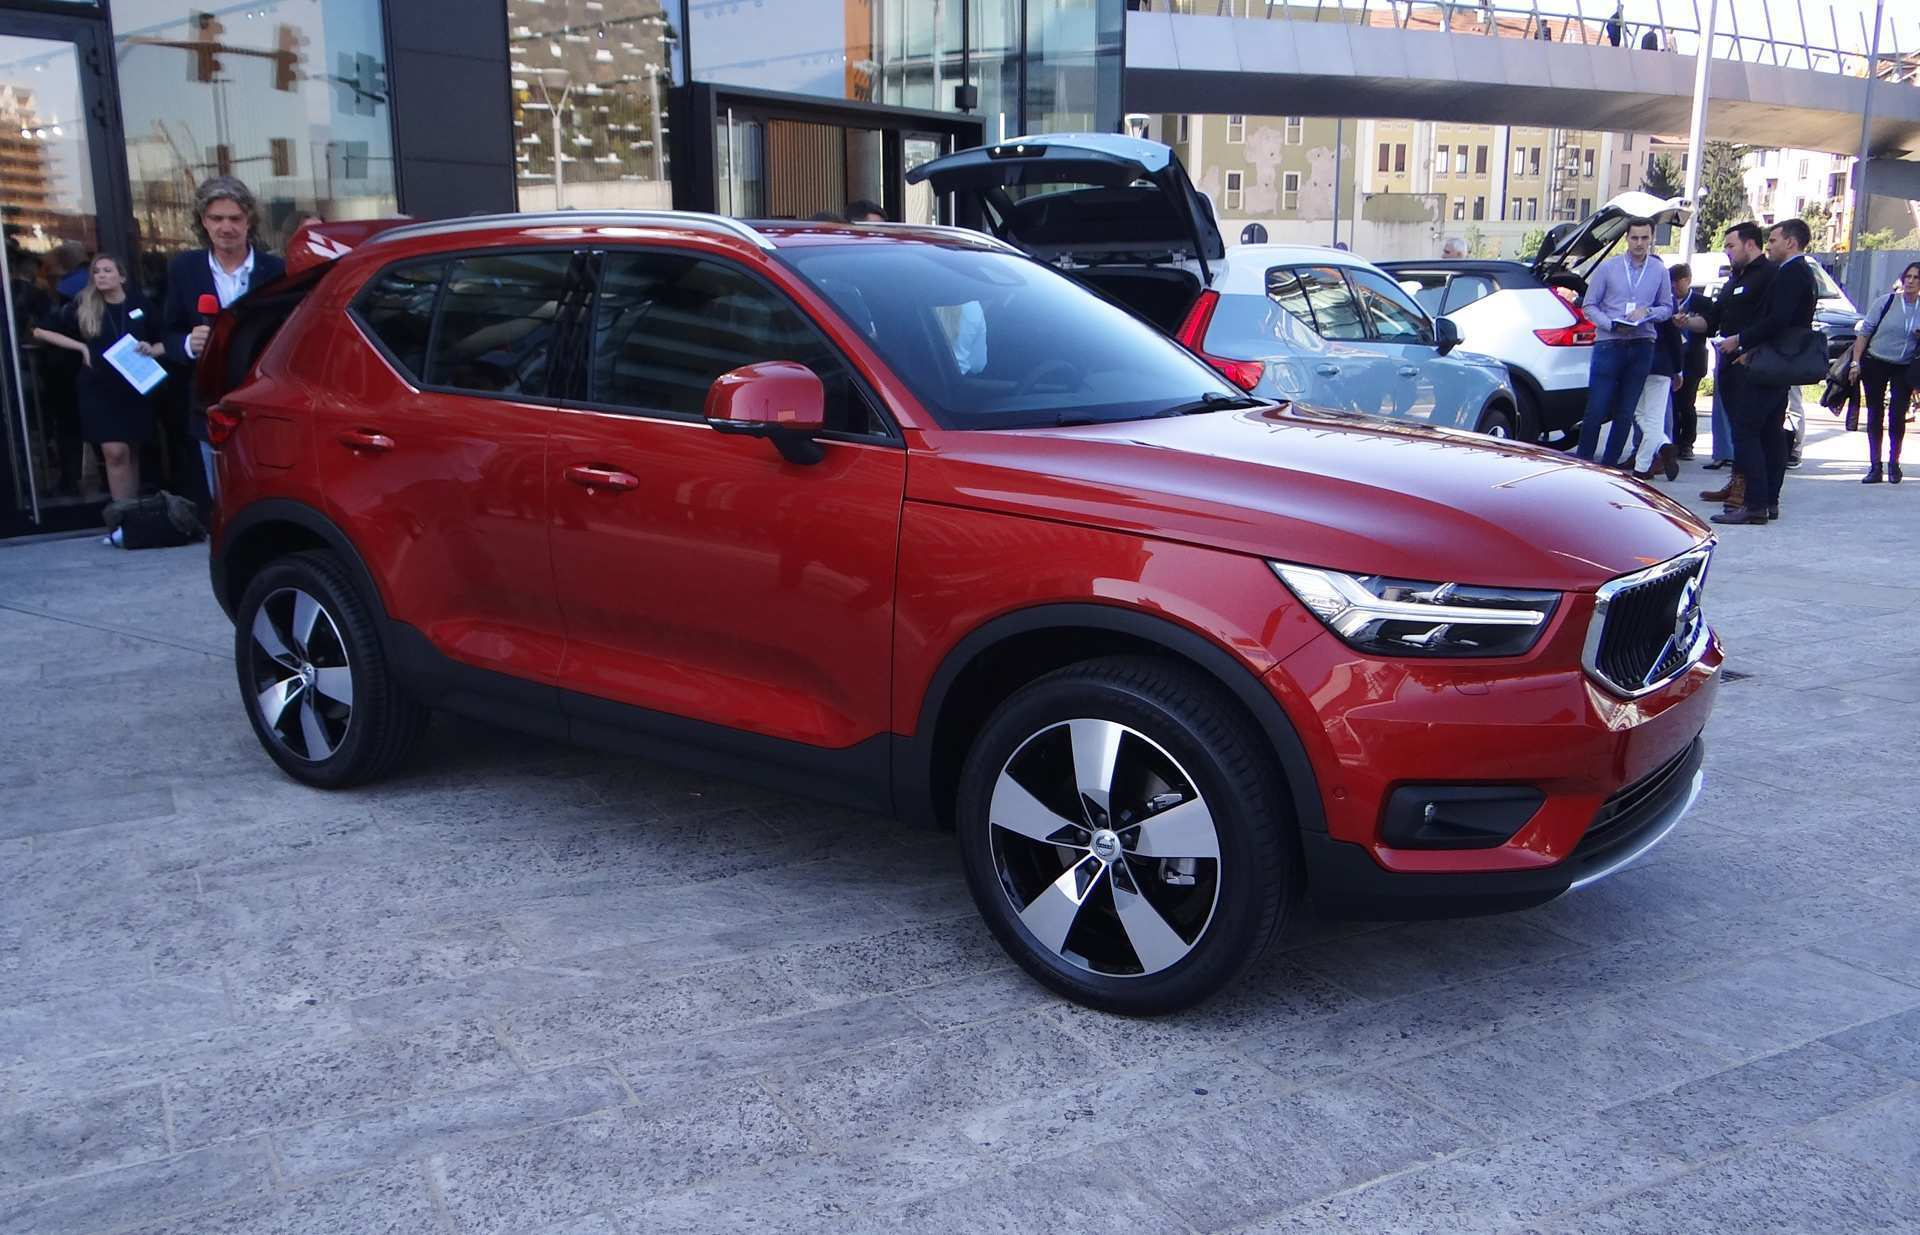 96 Concept of Volvo 2019 Build Review Specs And Release Date Ratings with Volvo 2019 Build Review Specs And Release Date